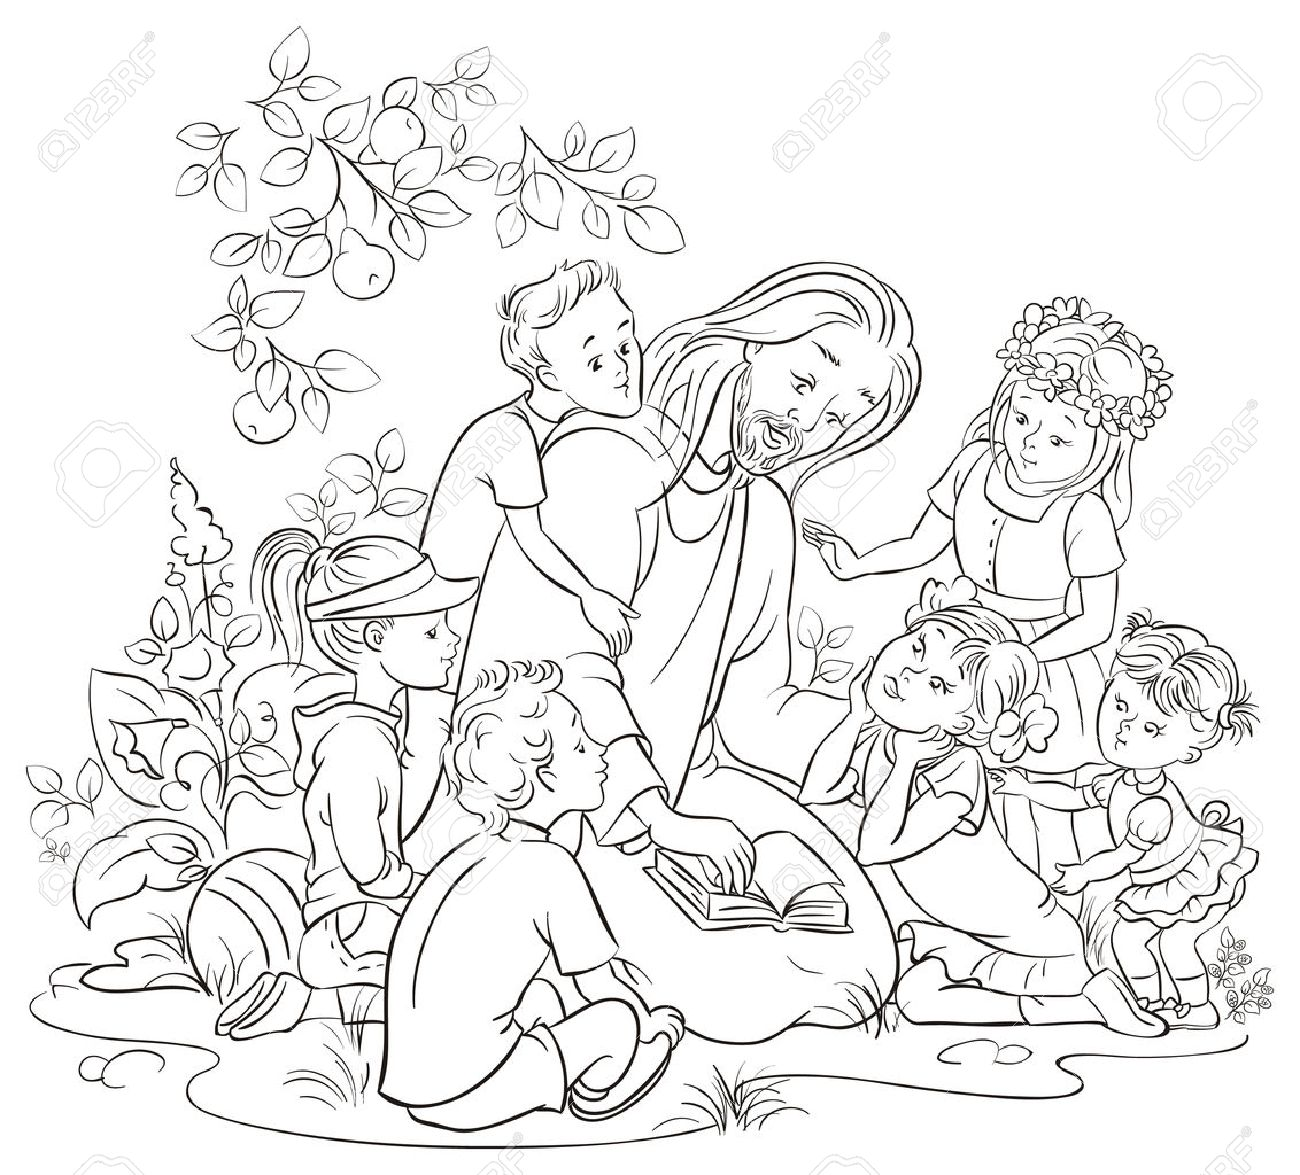 Jesus Reading The Bible With Children Colouring Page Royalty Free ...